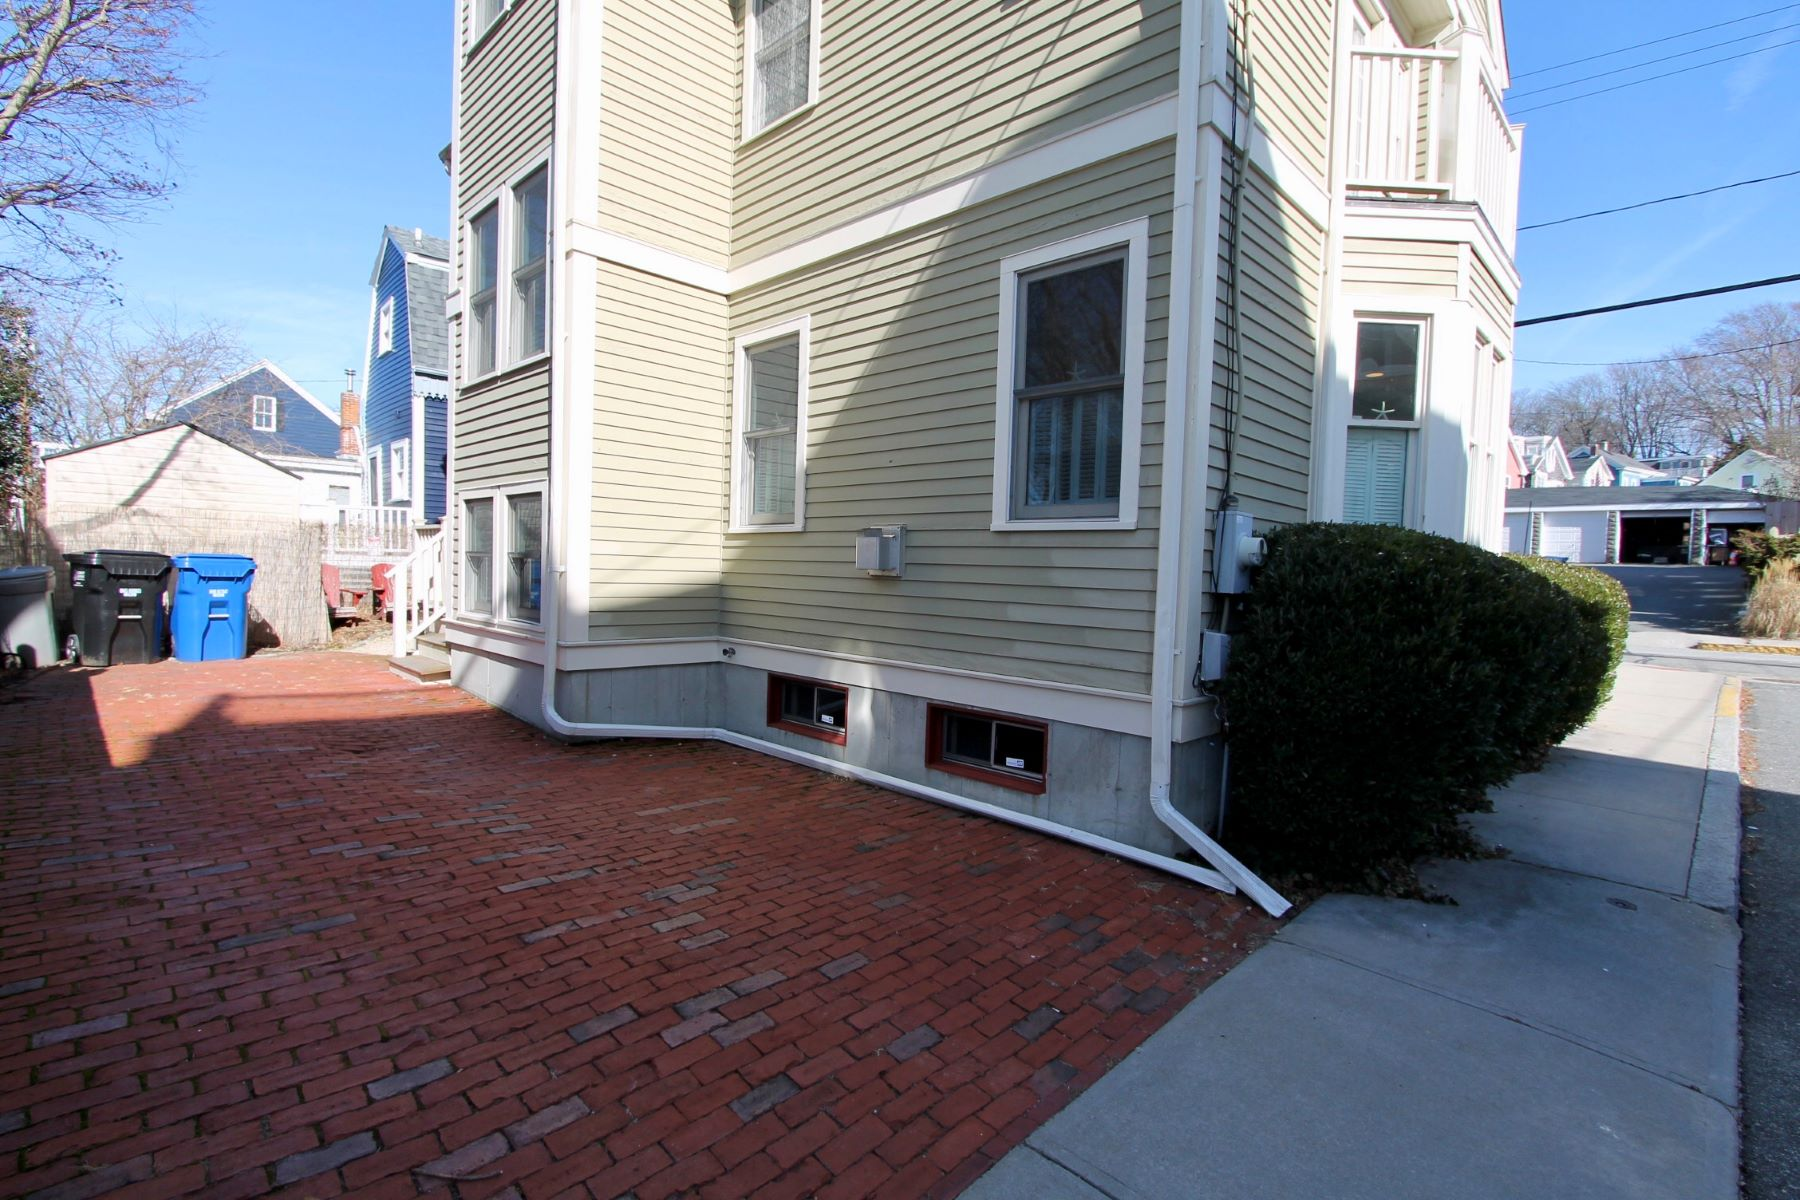 Additional photo for property listing at Yachting Village Cottage 379 Spring Street Newport, Rhode Island 02840 United States